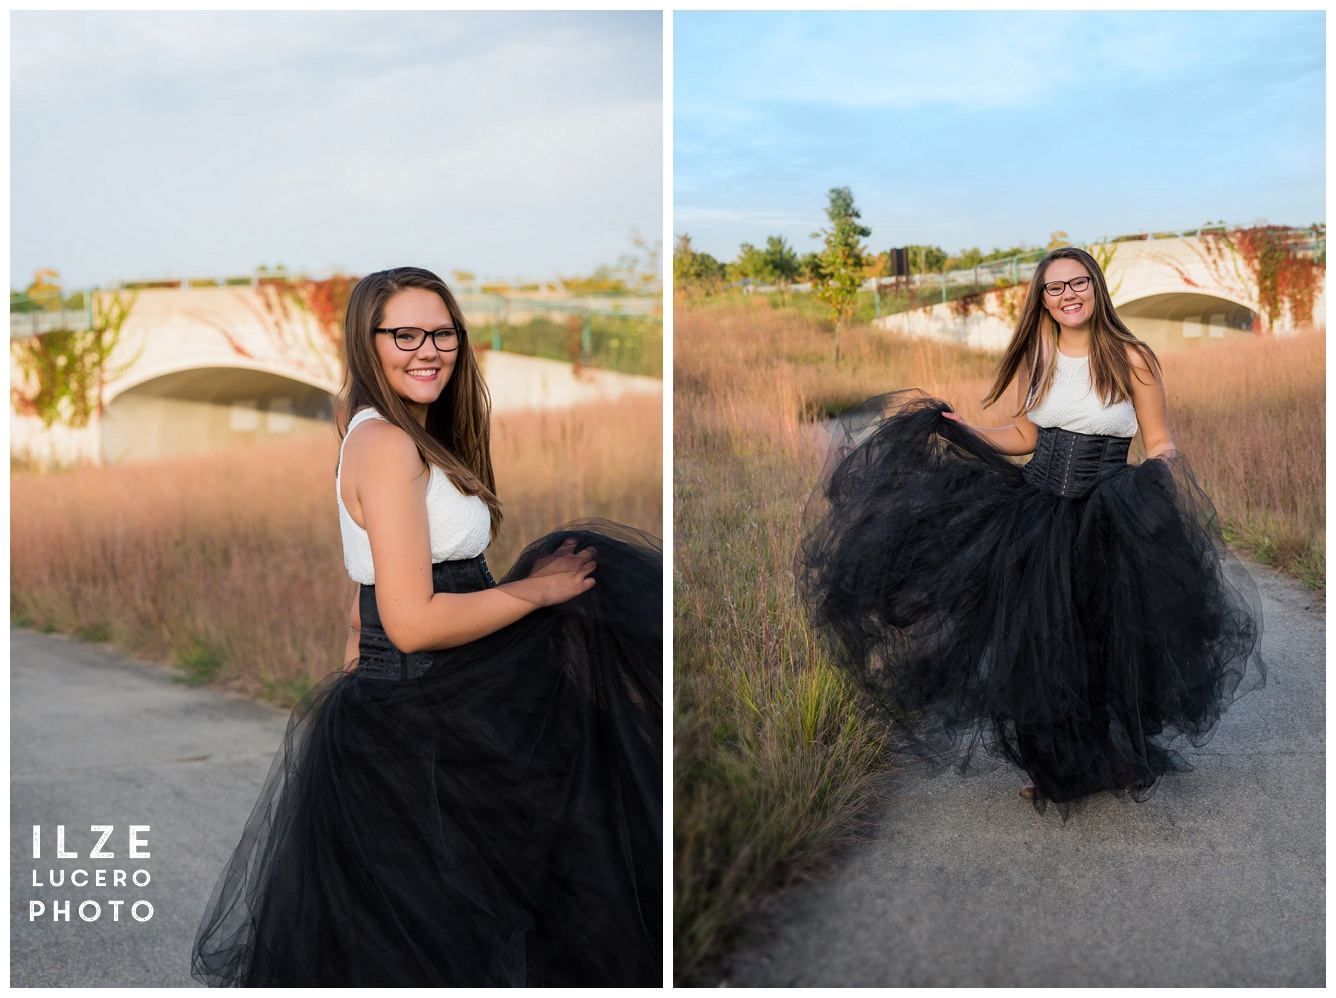 Tulle Skirt Senior Photo Shoot